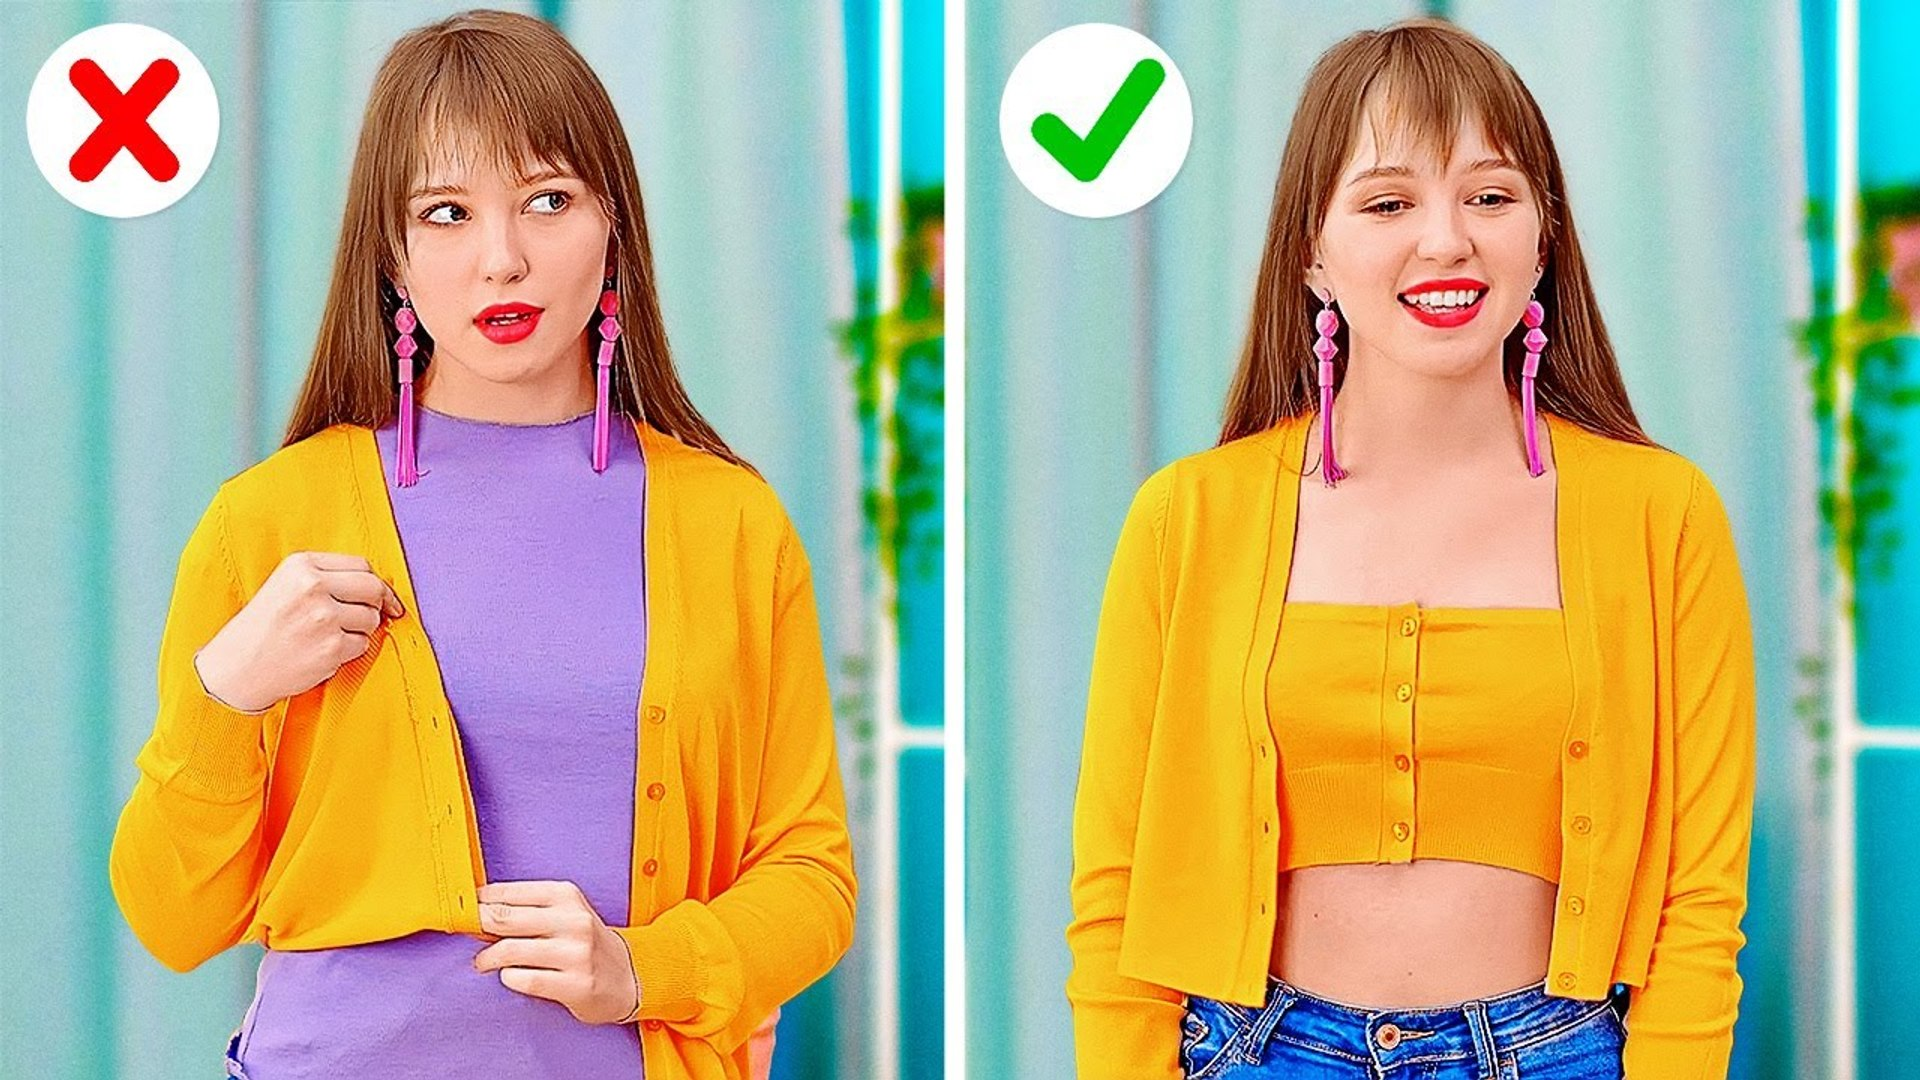 DIY Entertainment | AWESOME CLOTHES AND SHOES HACKS   Funny And Creative Tips For Your Wardrobe by 1